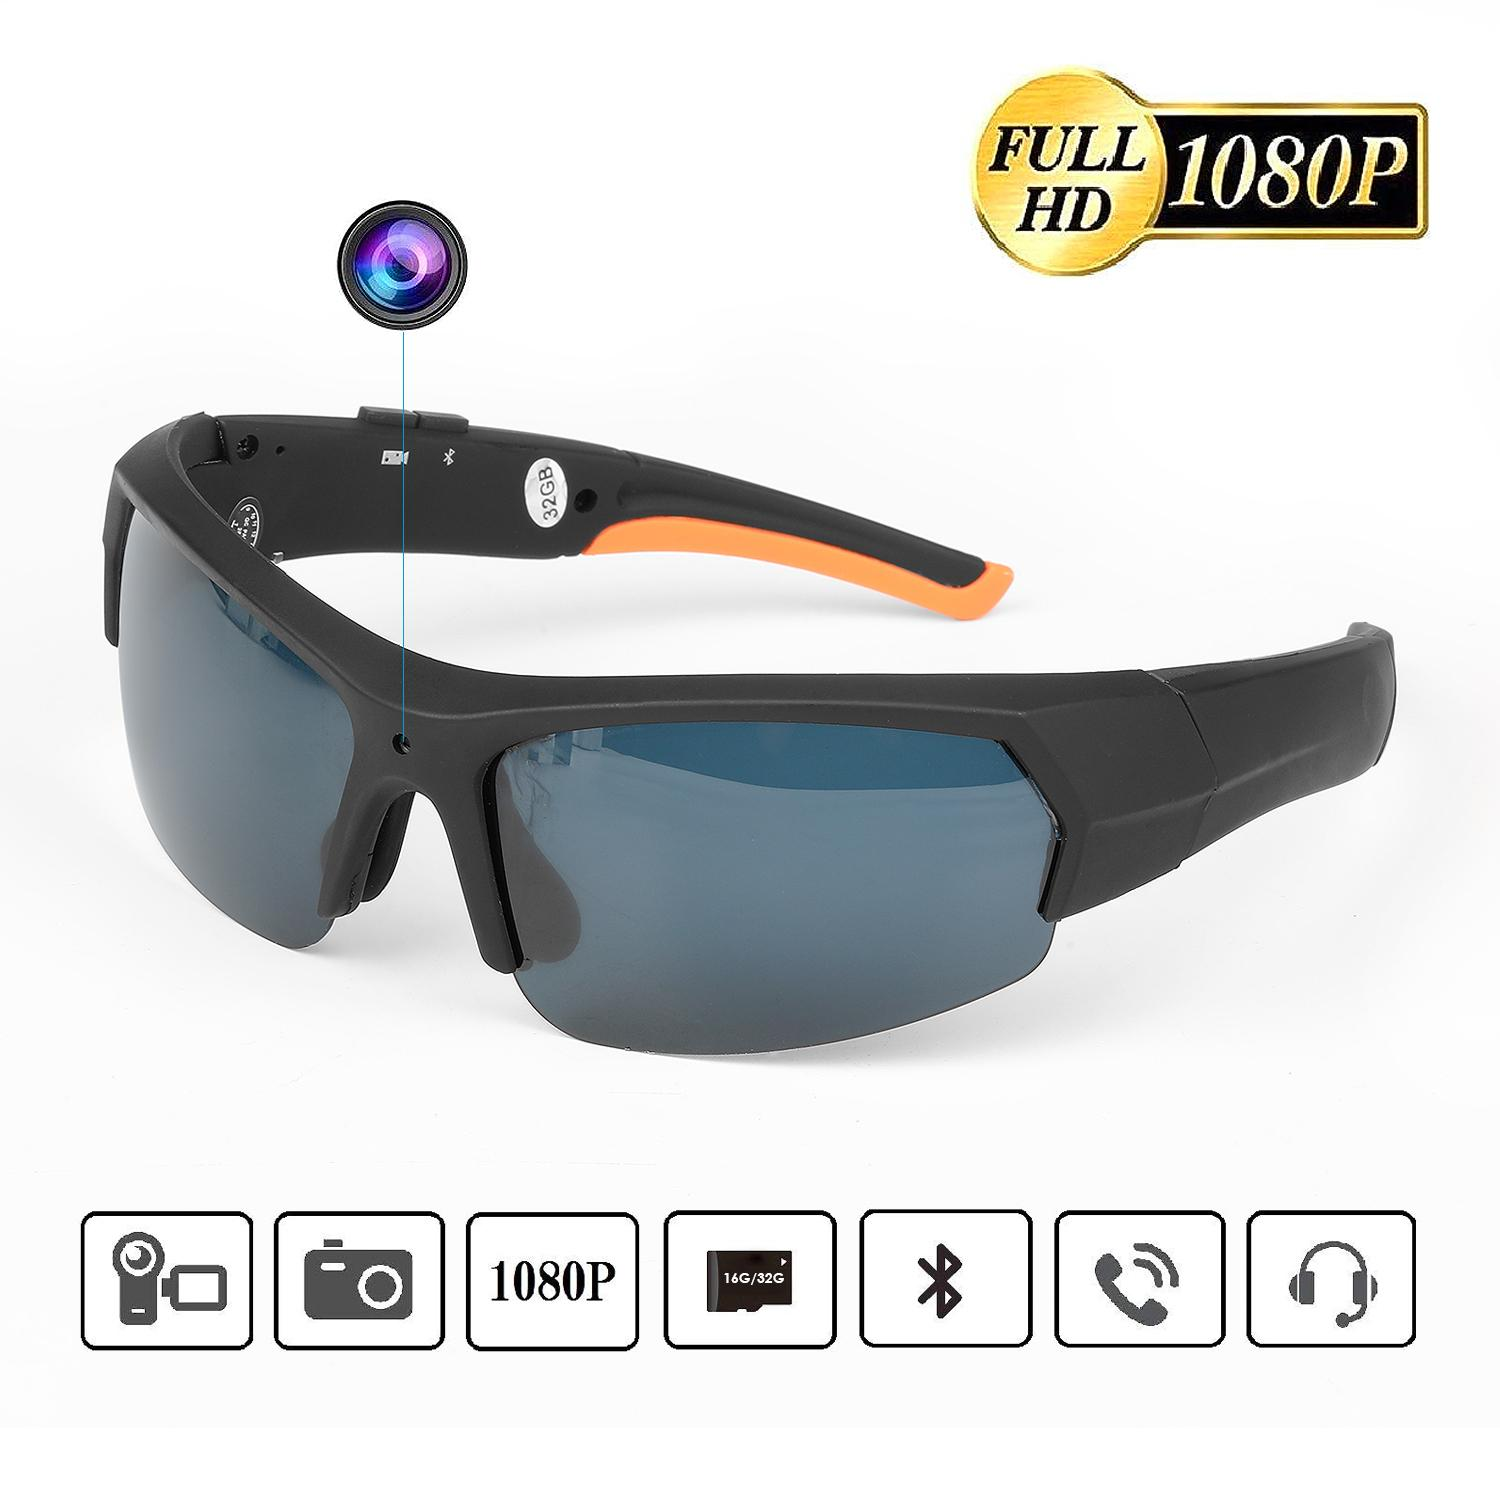 Multifunctional Sunglasses Camera HD 1080P Camcorder with Bluetooth Headset Built-in 16G/32G Memory Waterproof for Outdoors